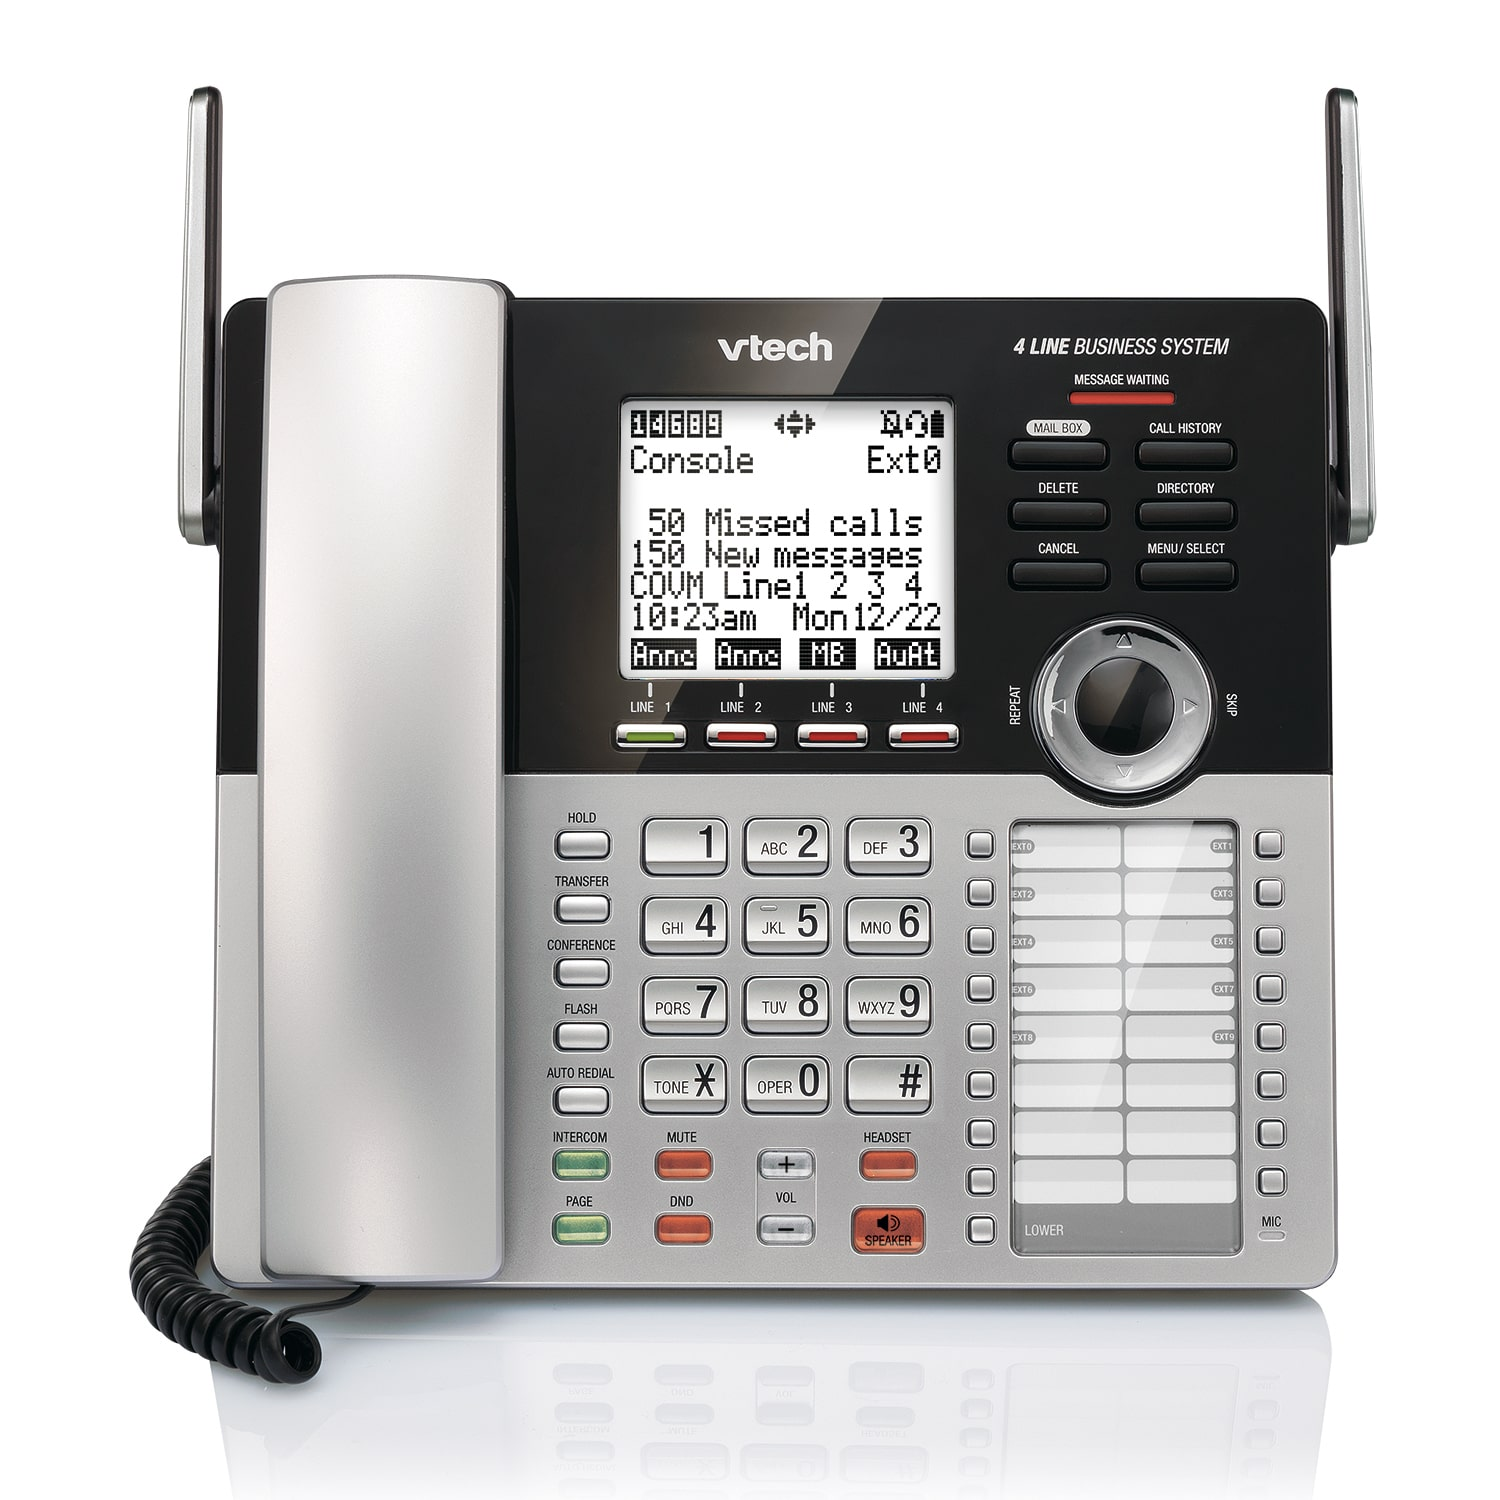 vtech phone how to get messages